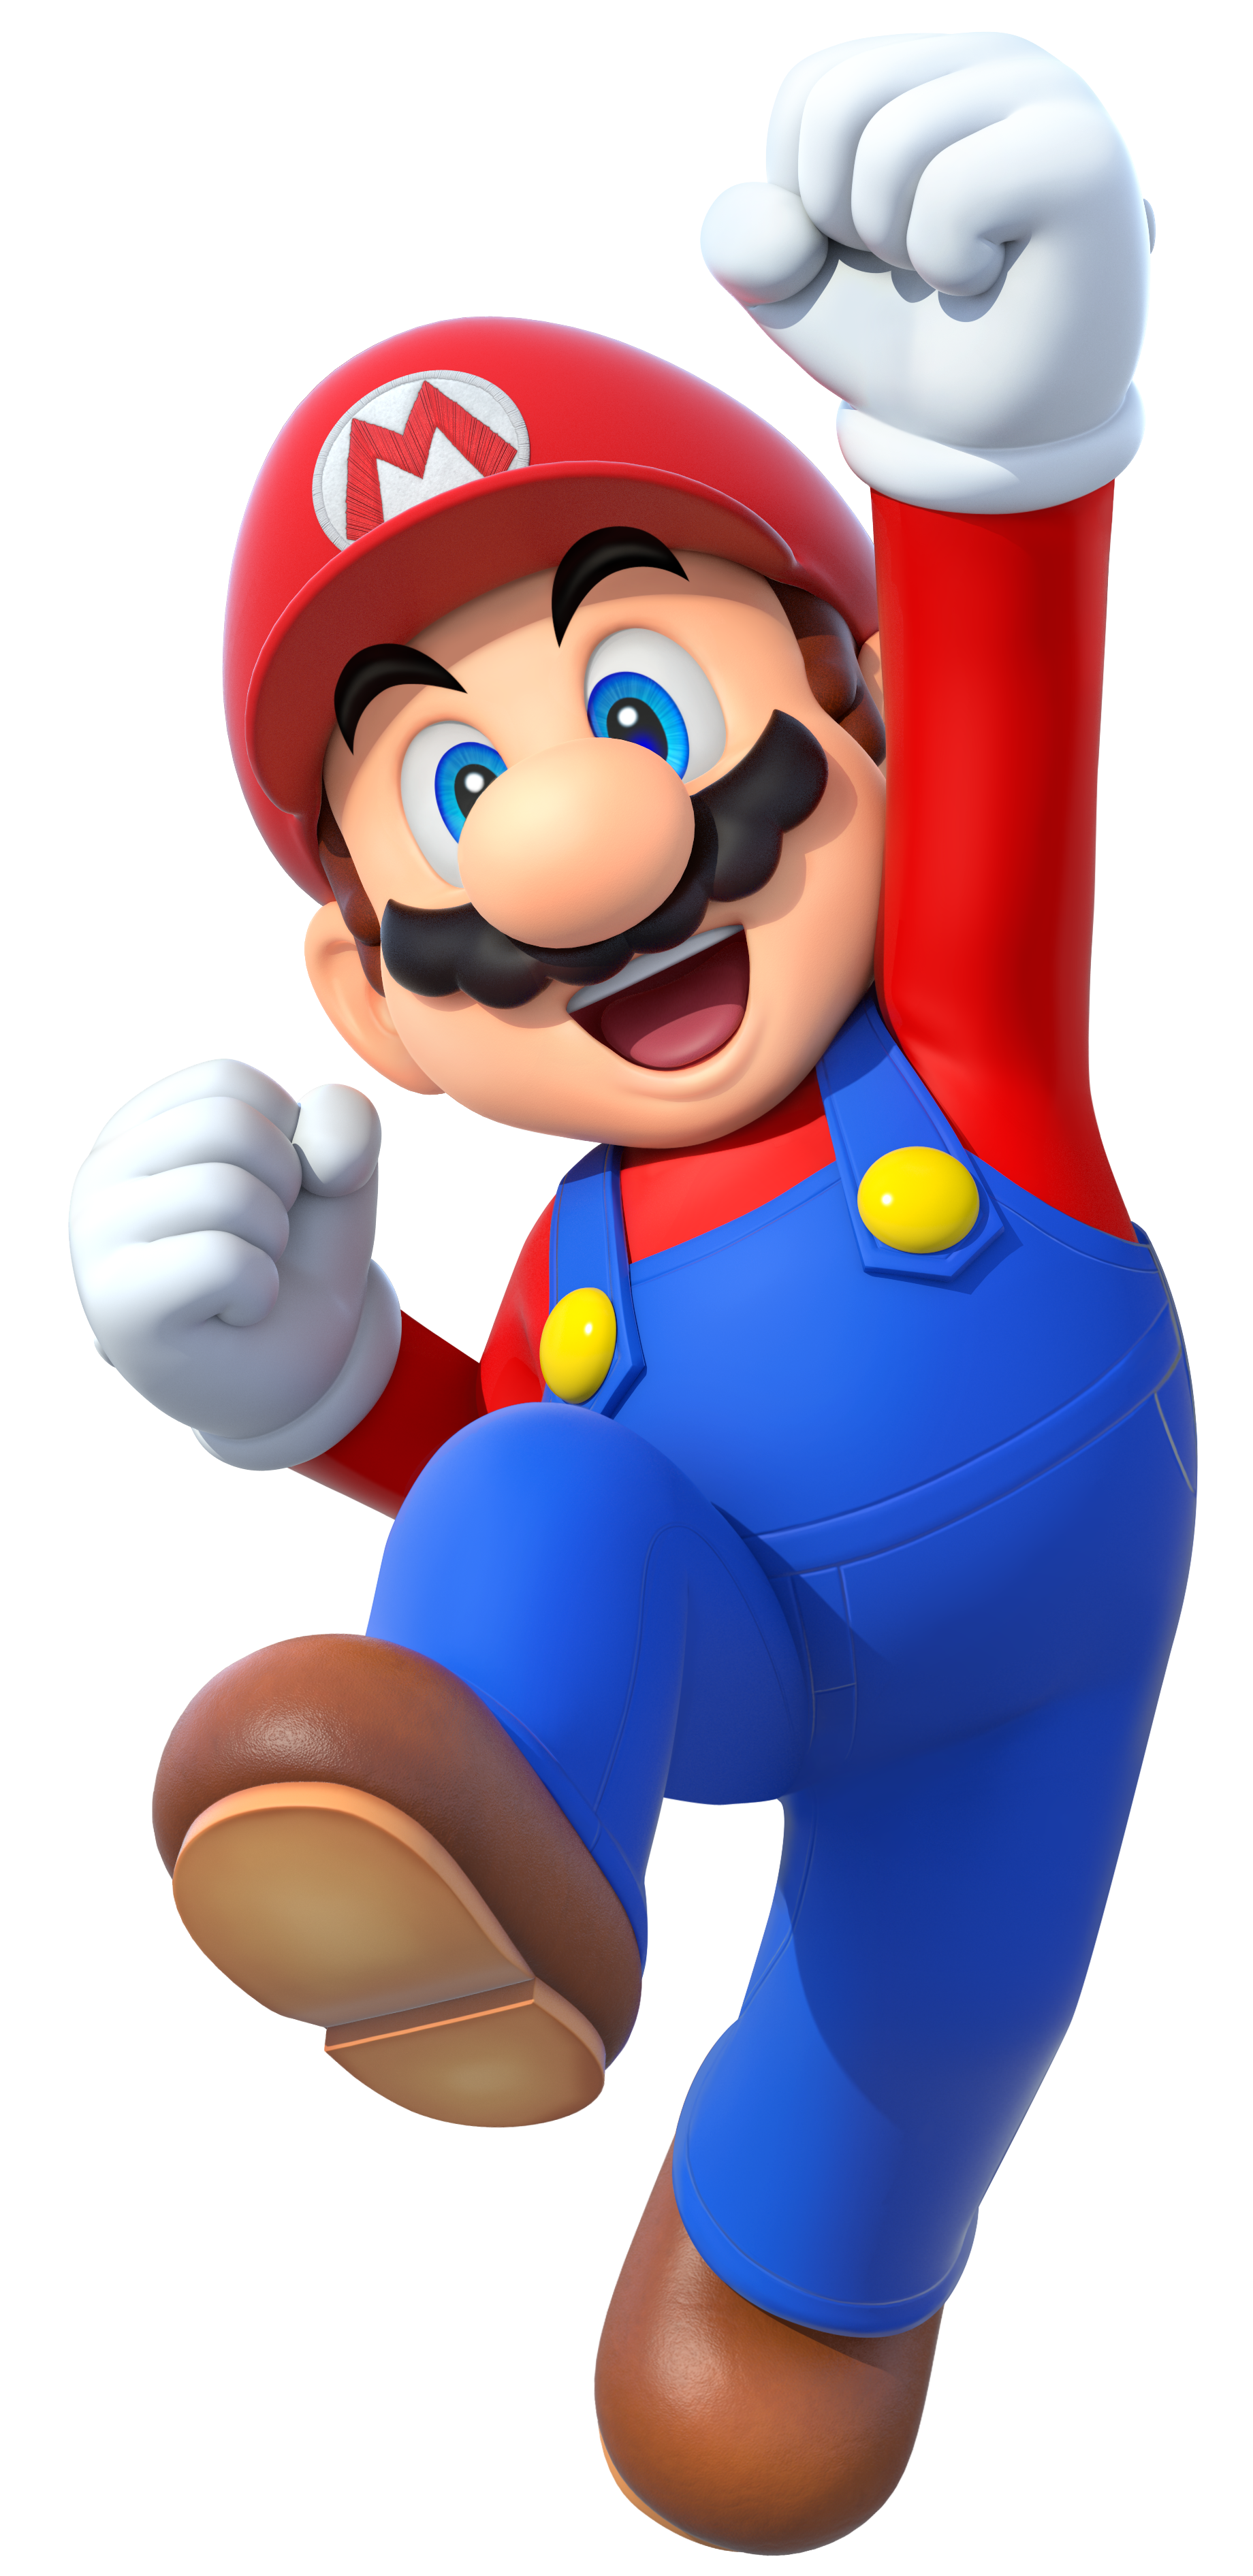 favorite mario party characters poll results mario party #11596